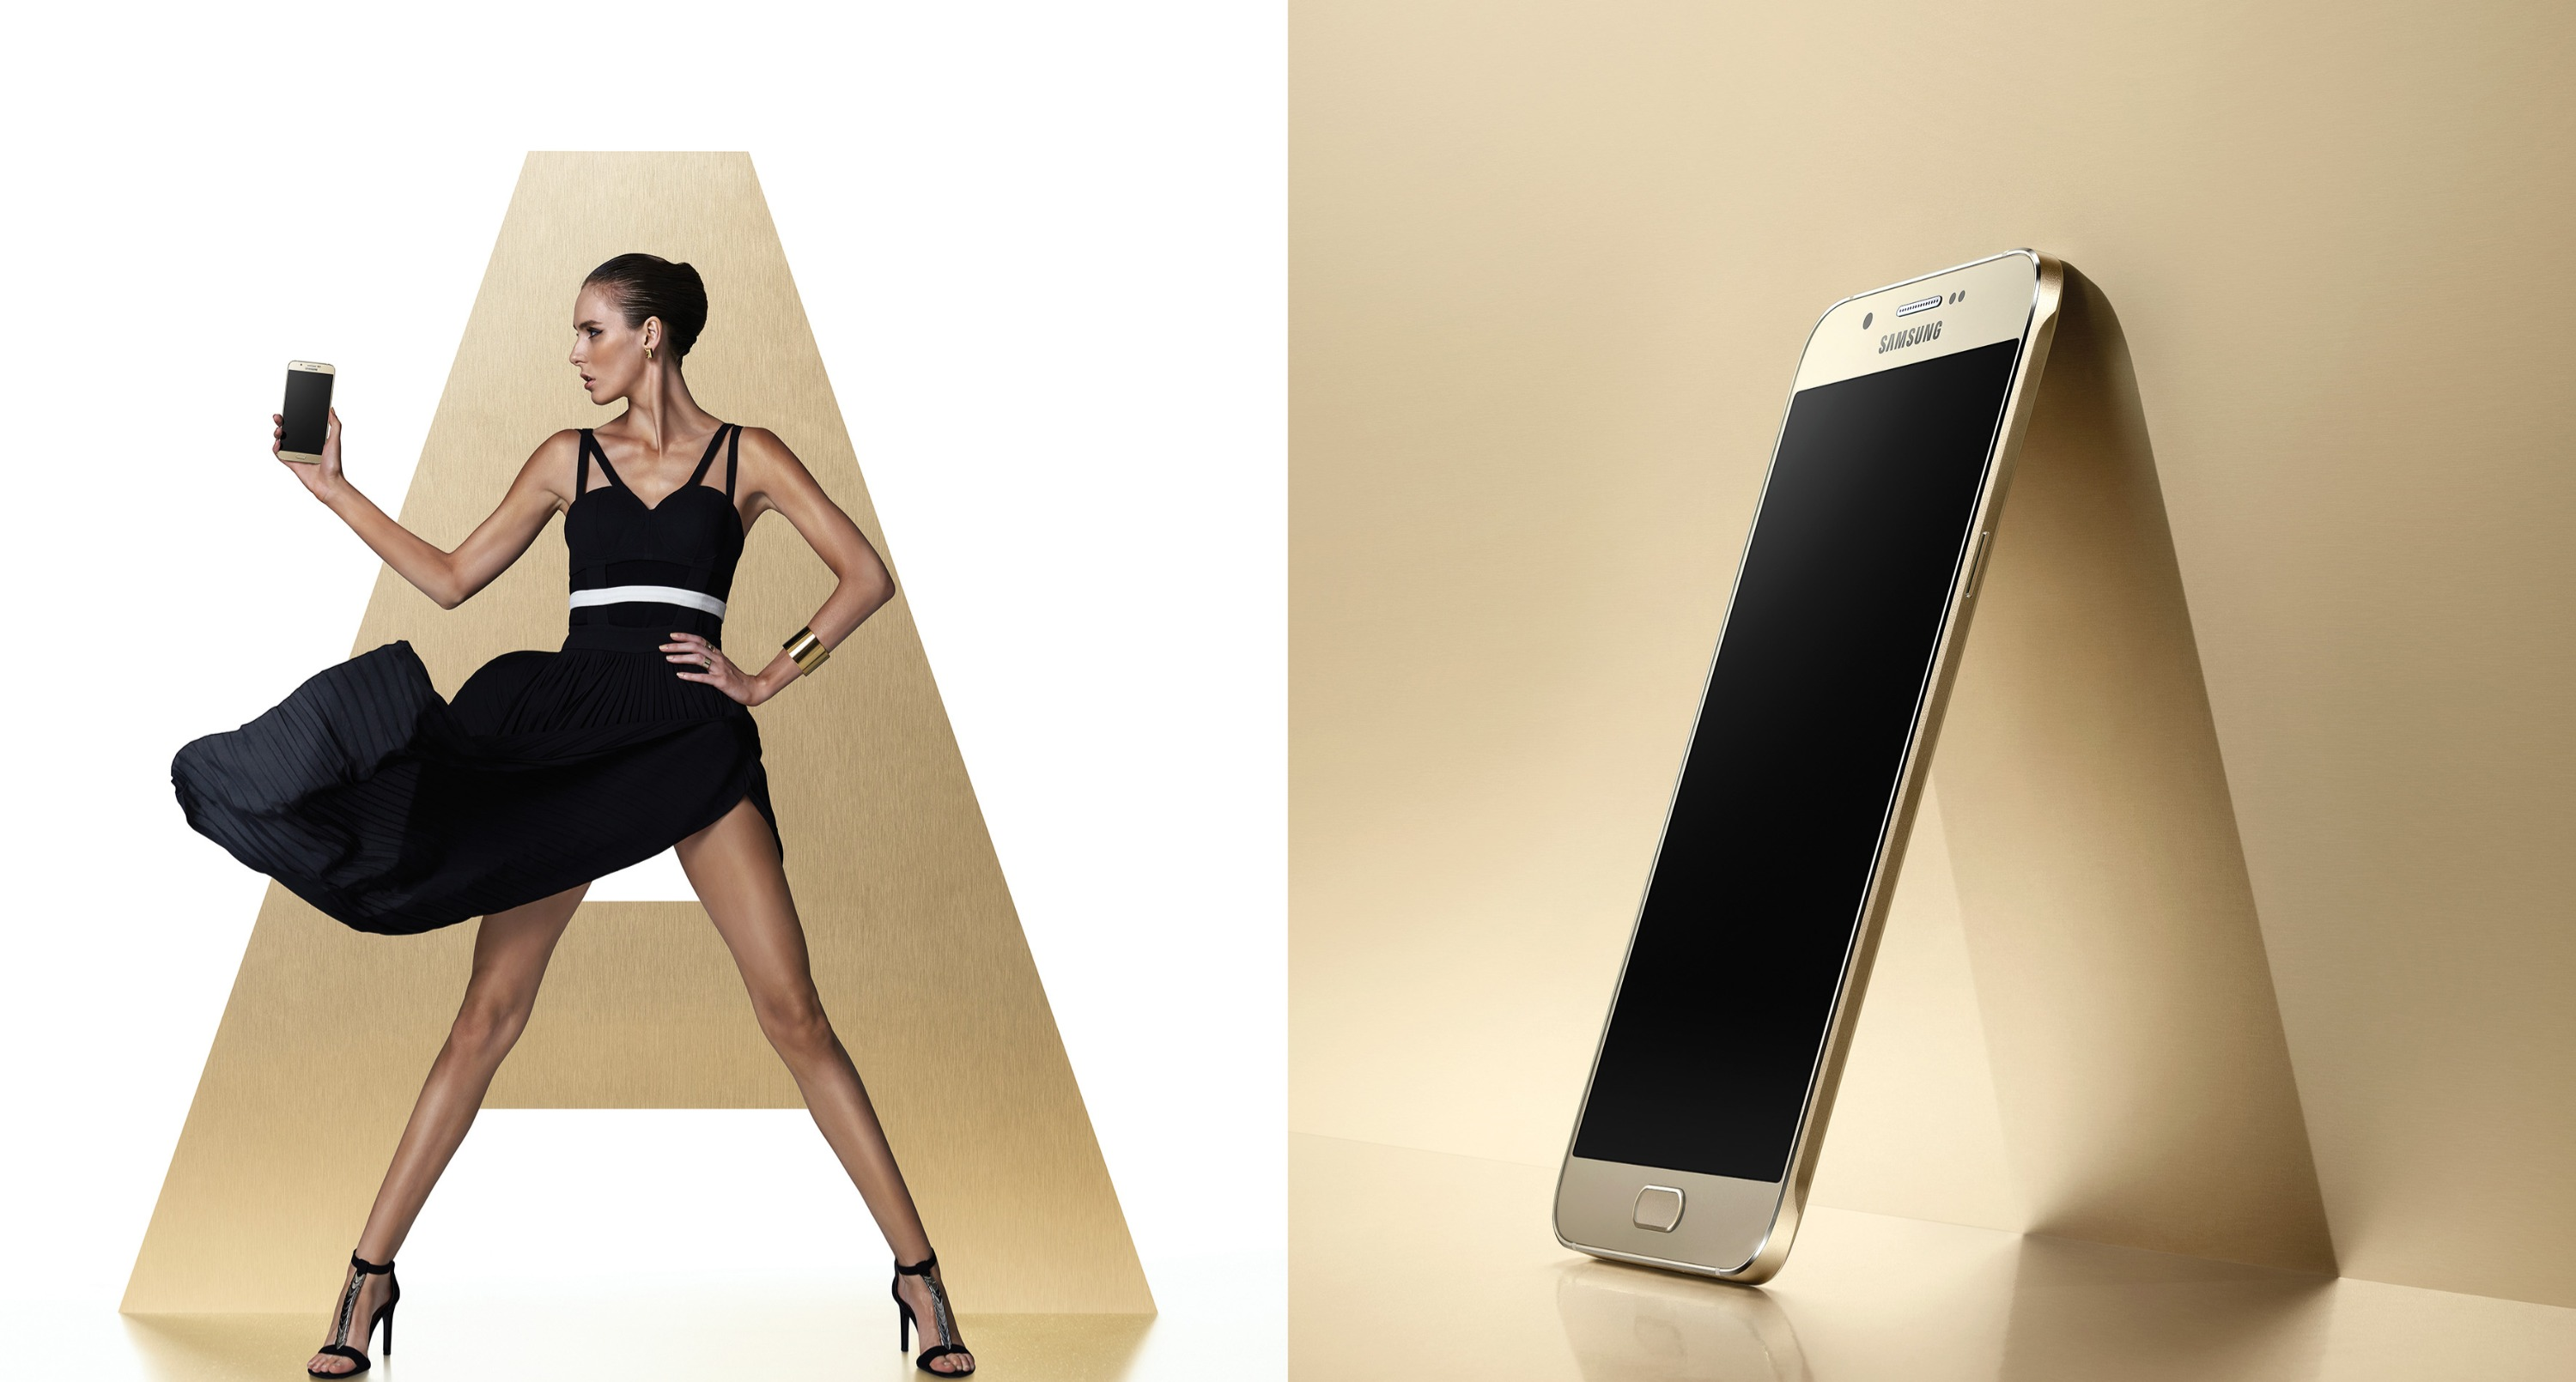 Galaxy A8 Lifestyle Model with Single_편집